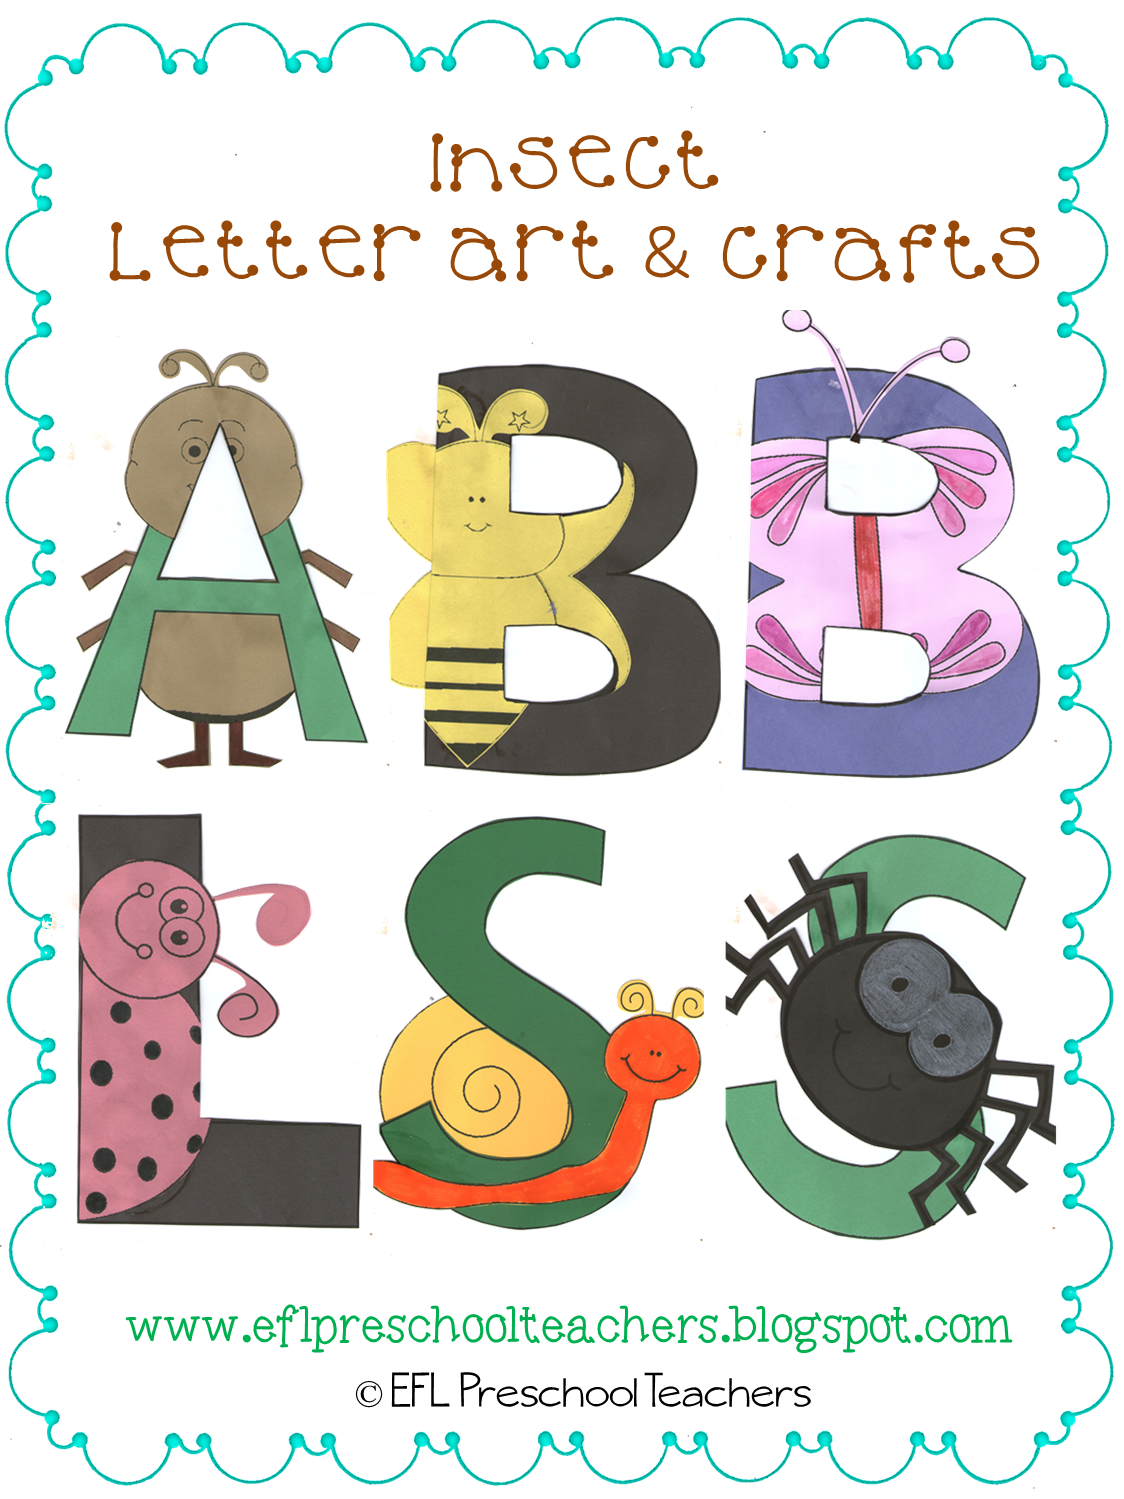 Esl Efl Preschool Teachers Insects Worksheets And More For Preschool Ela